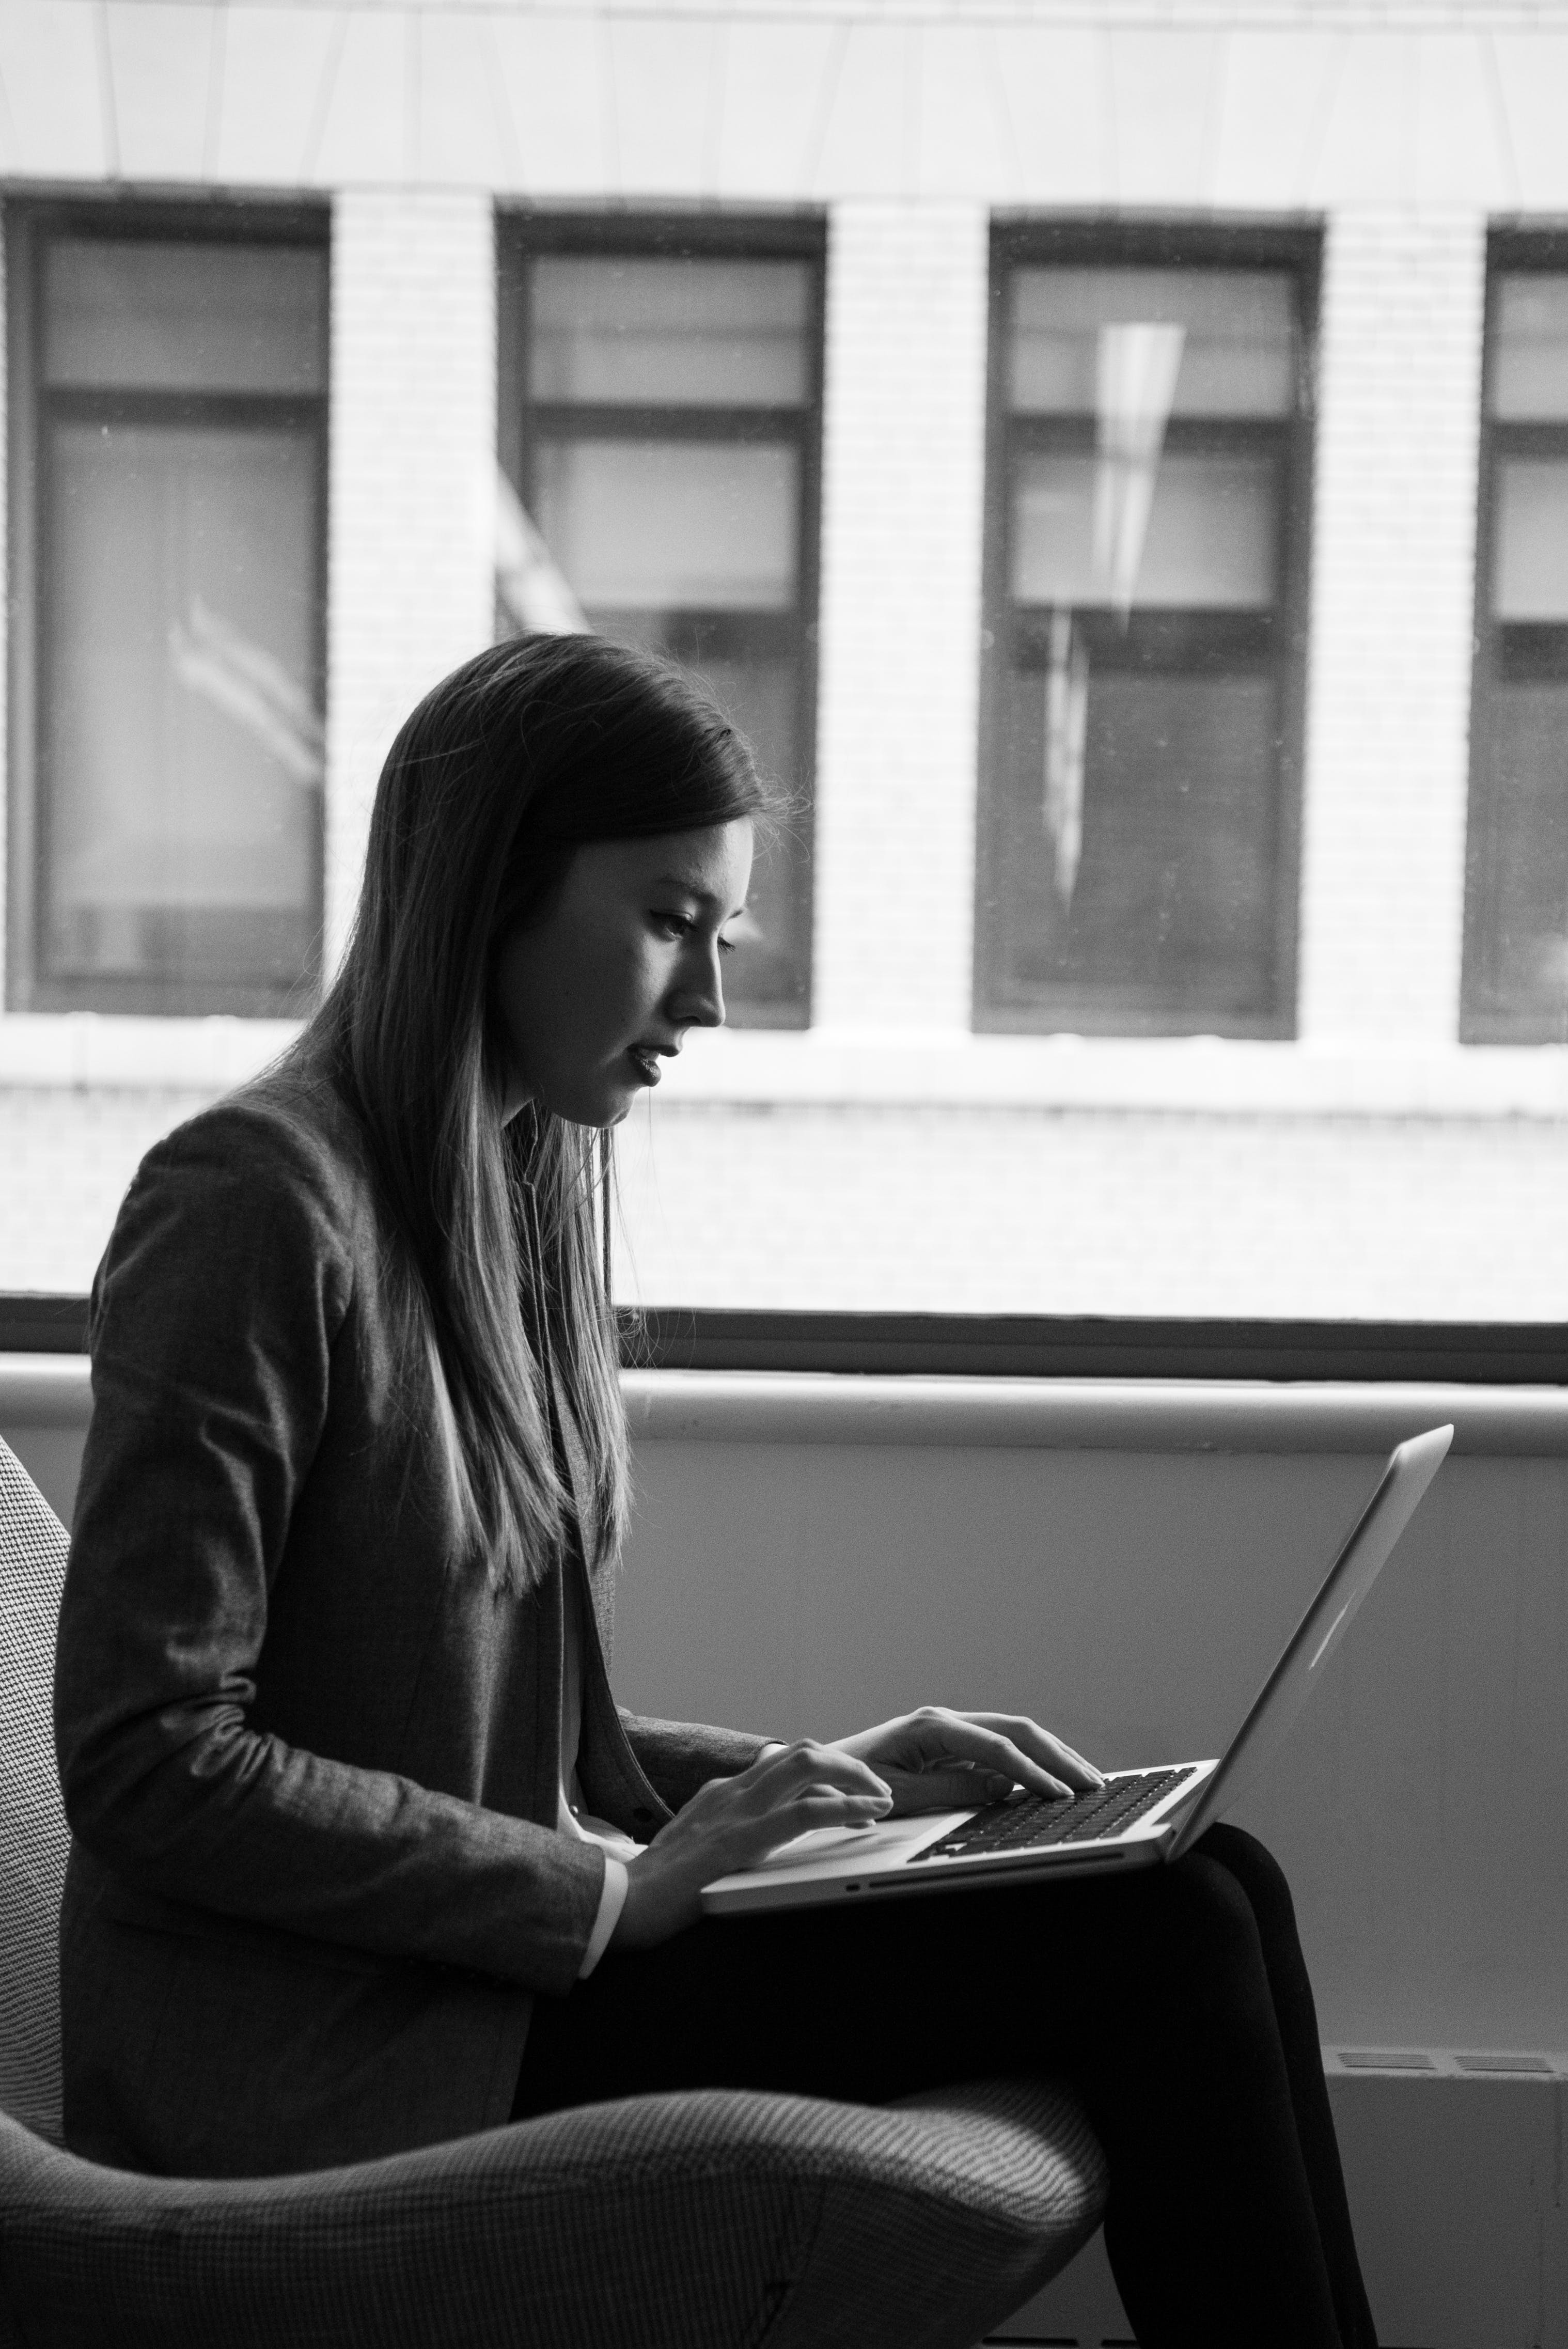 Grayscale Photography of Woman in Suit Coat Using Laptop Computer